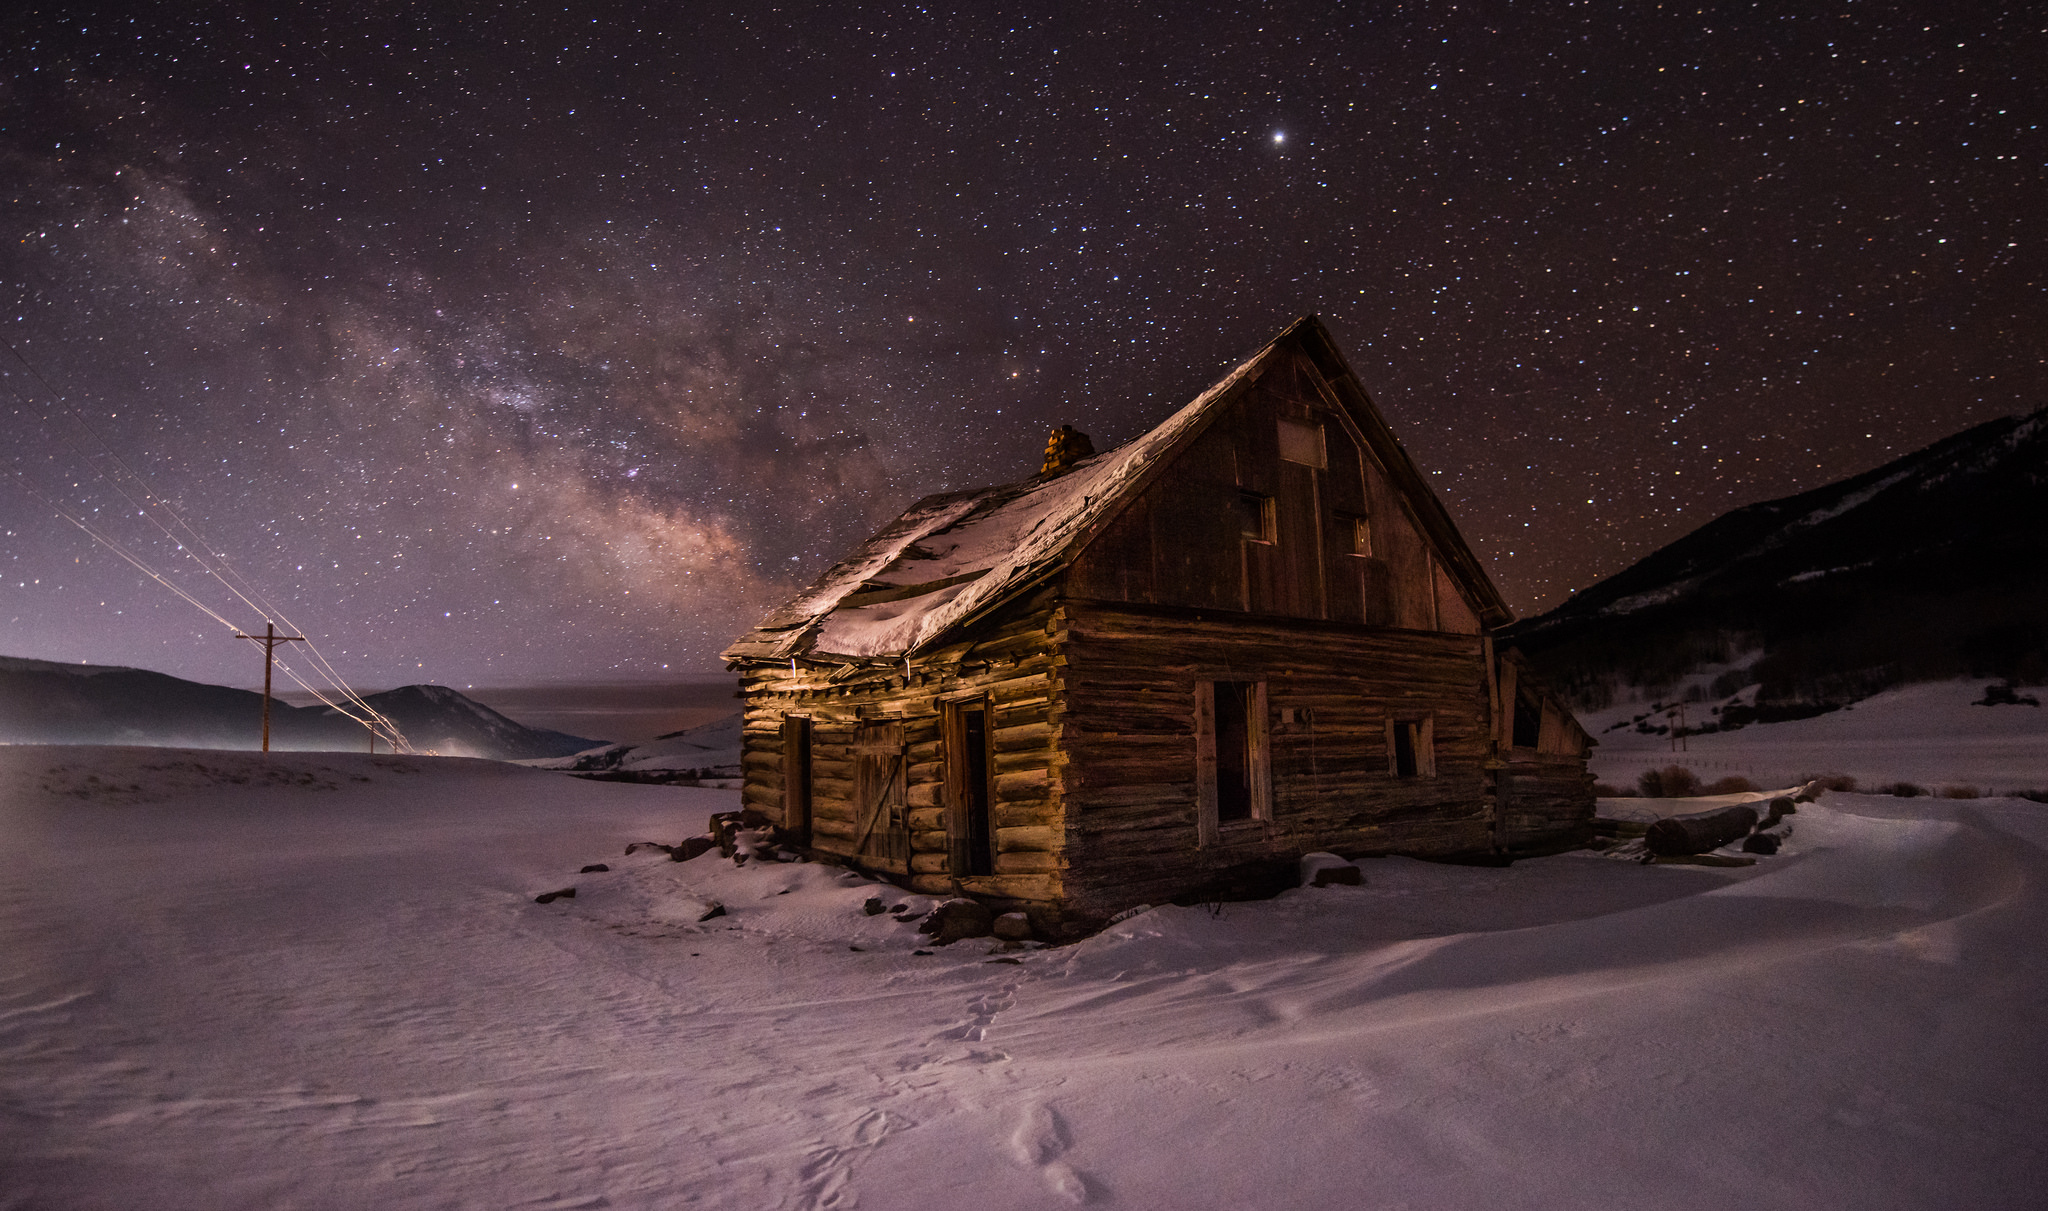 Old house under night sky and Milky Way